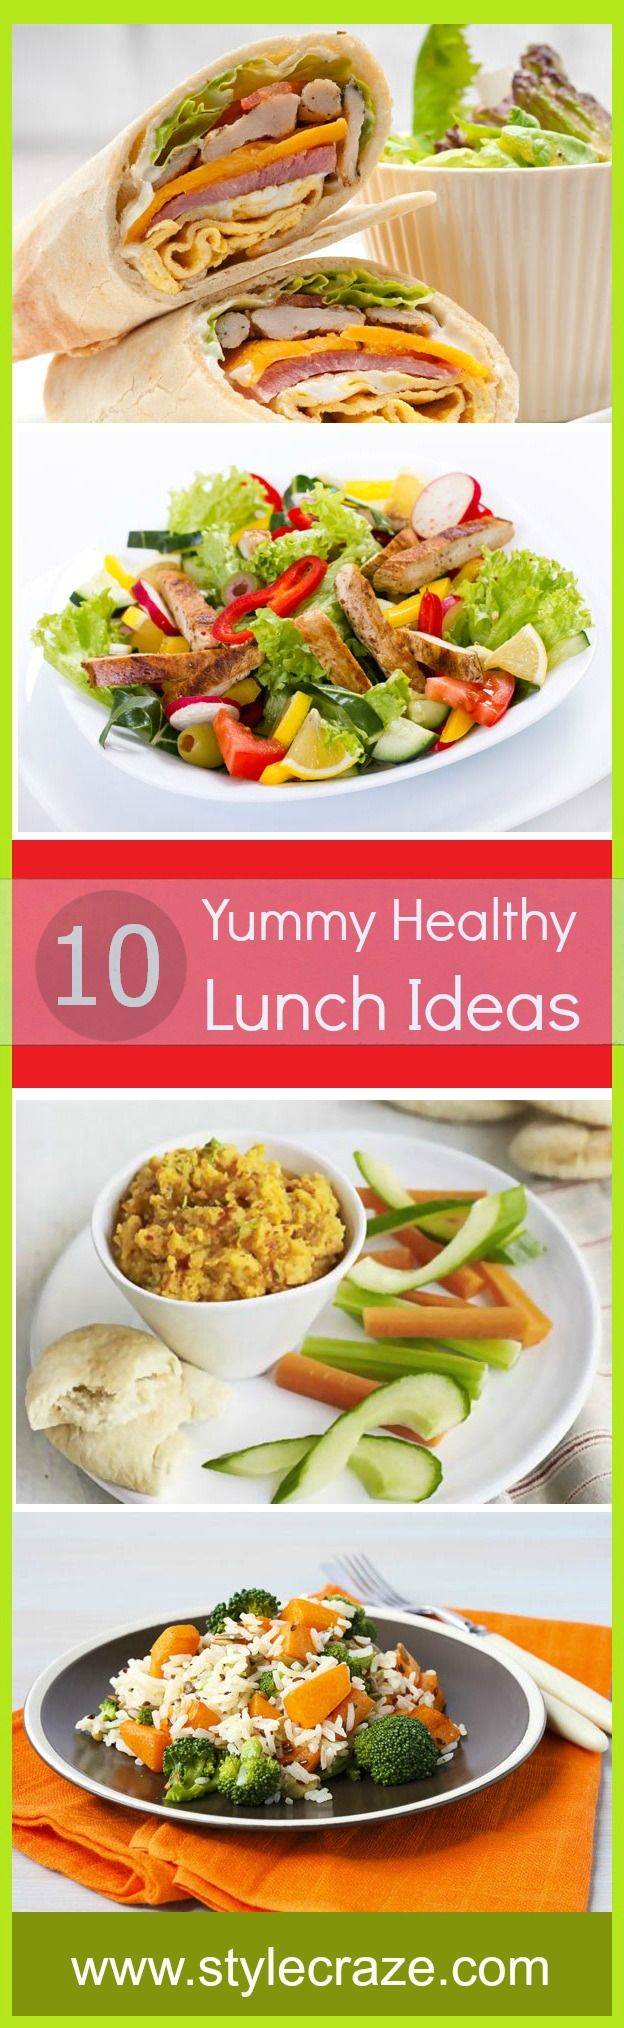 15 Healthy And Delicious 30-Minute Meal Recipes foto